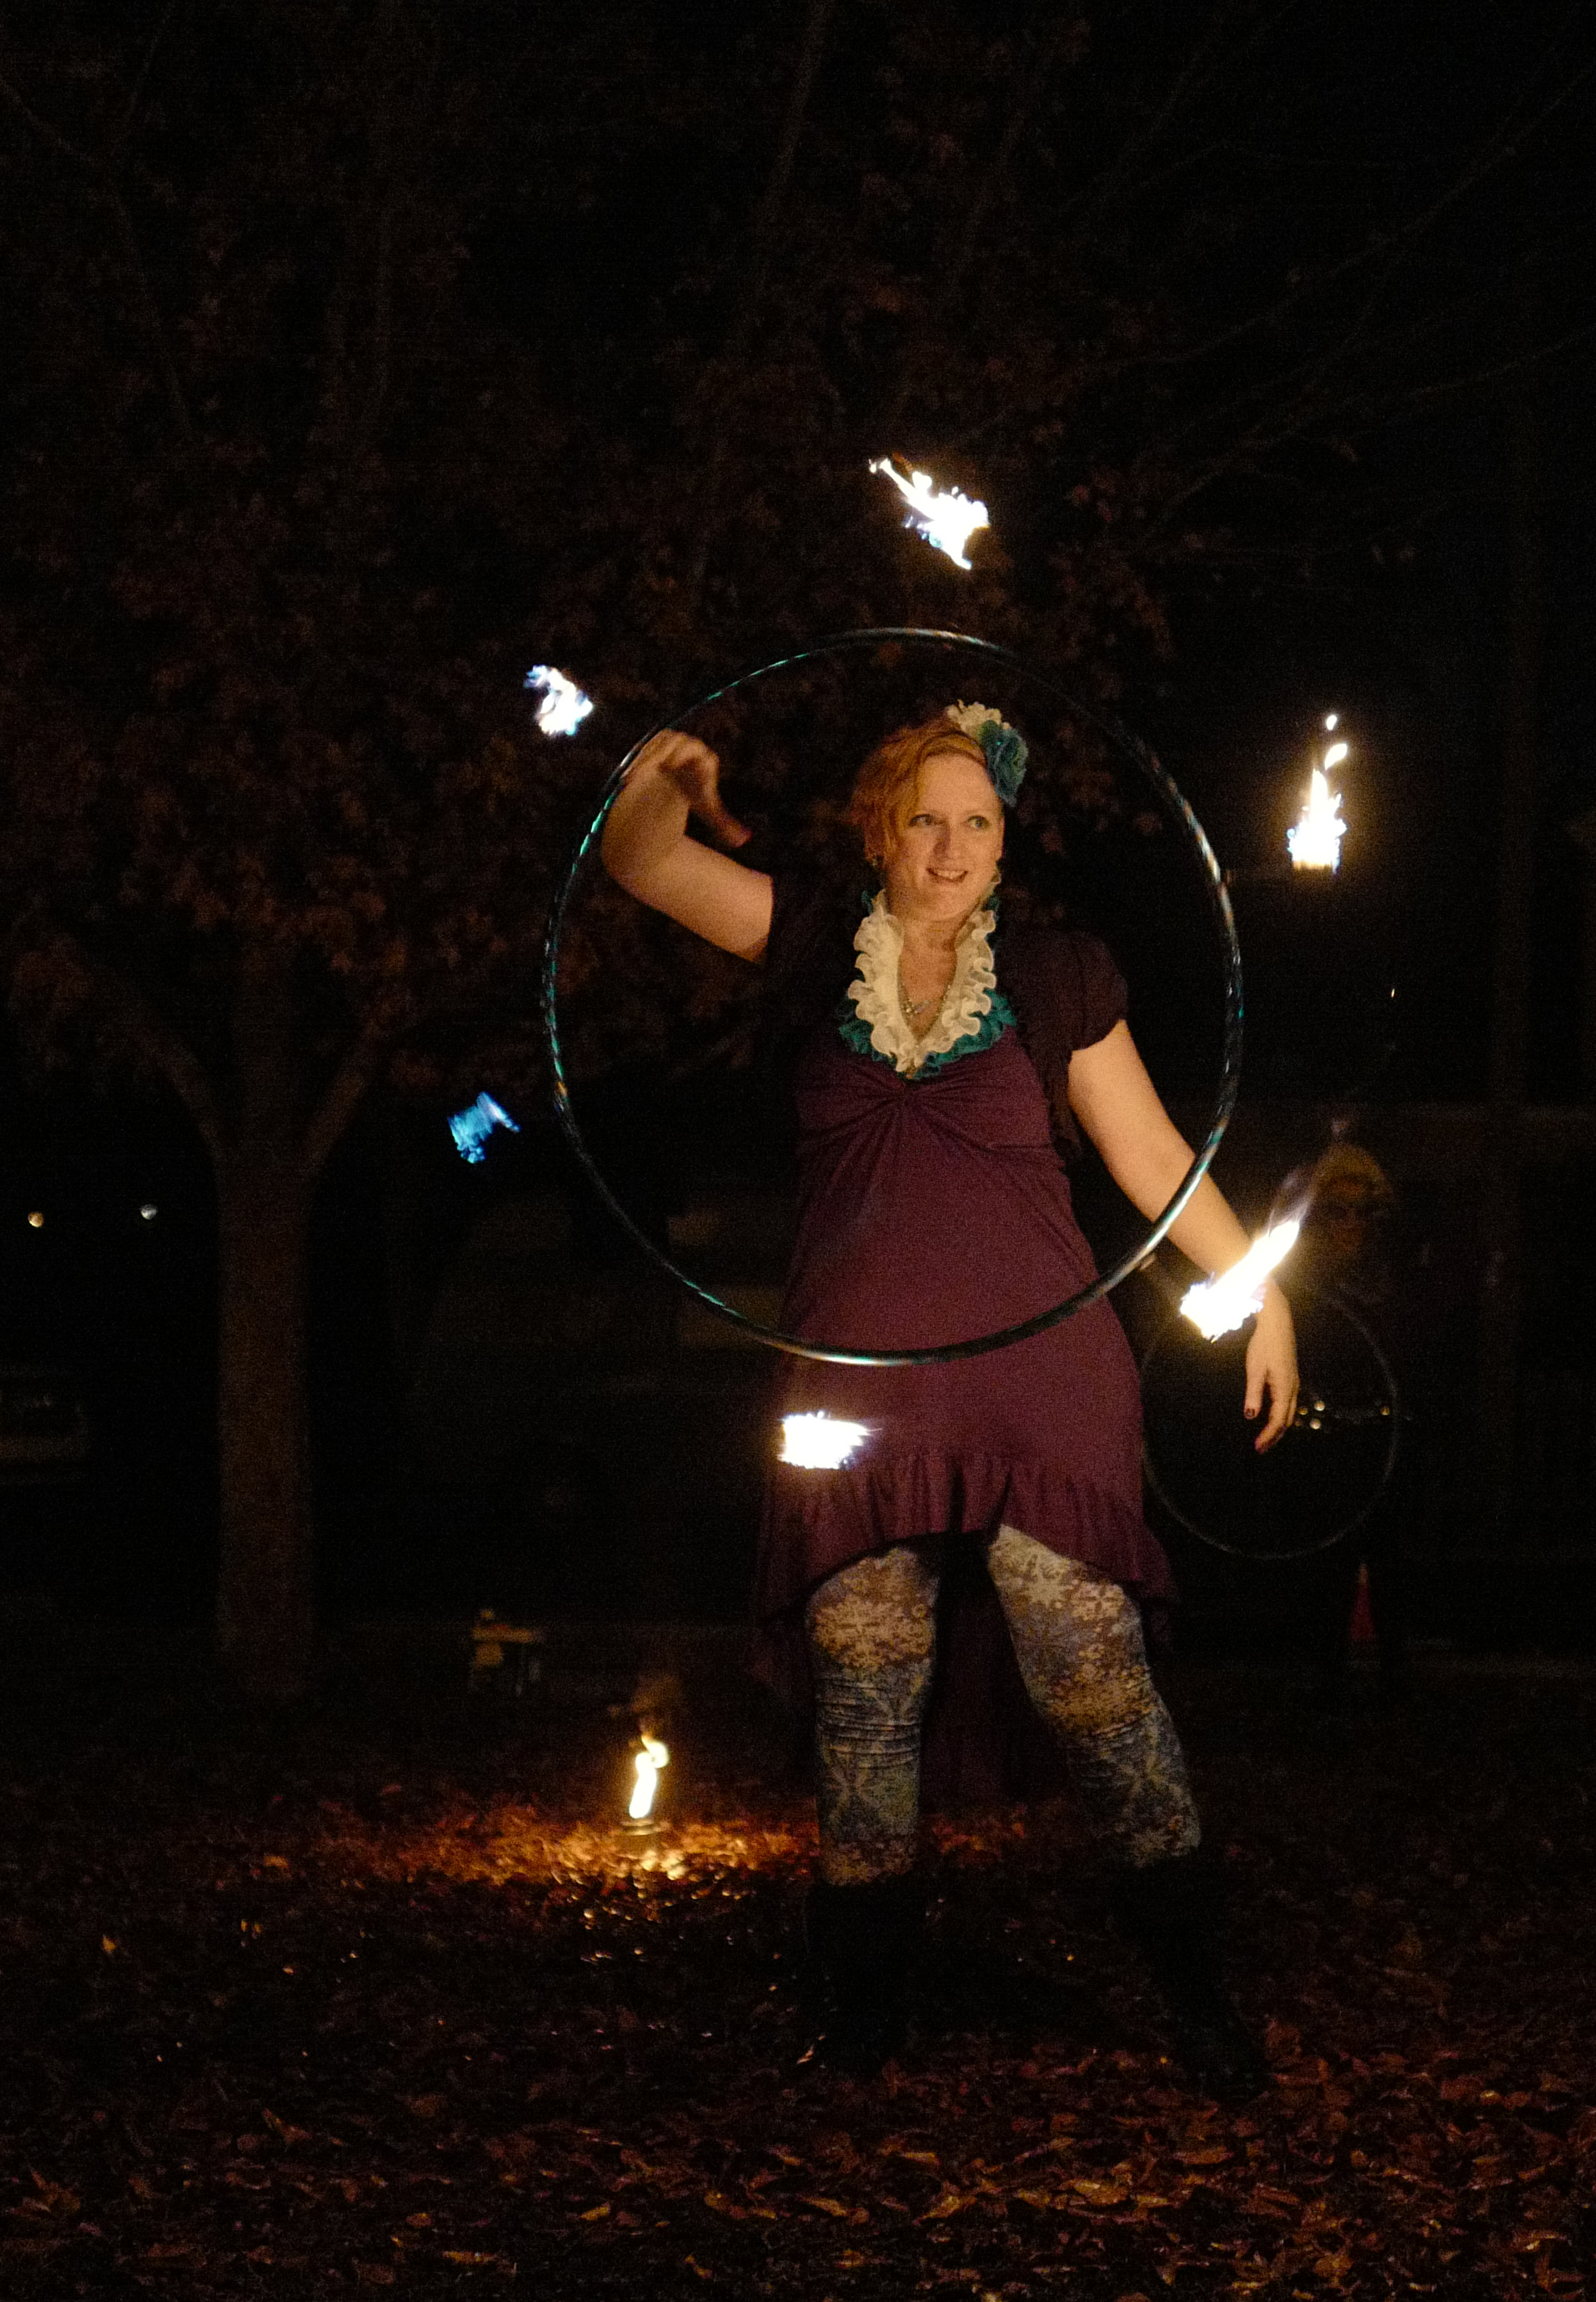 led and fire shows (22)B.jpg